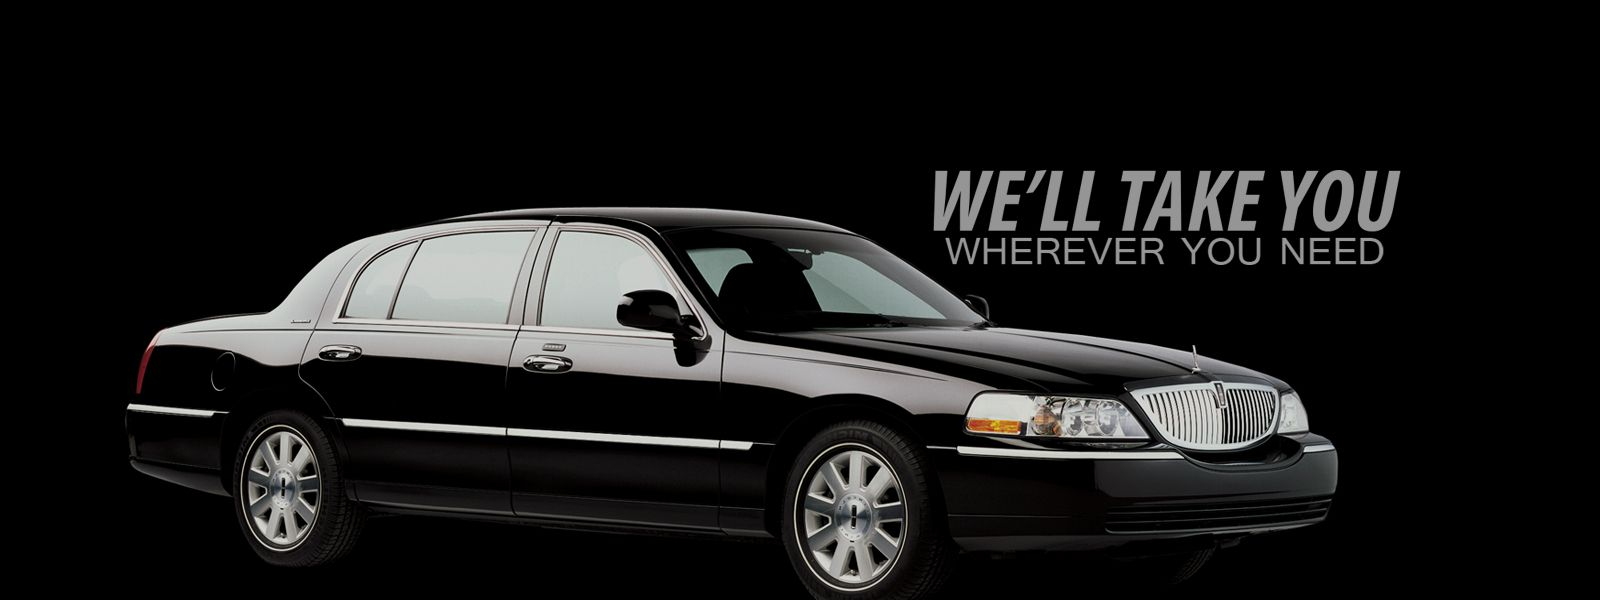 Vero Beach Taxi and Airport Shuttle offers transportation